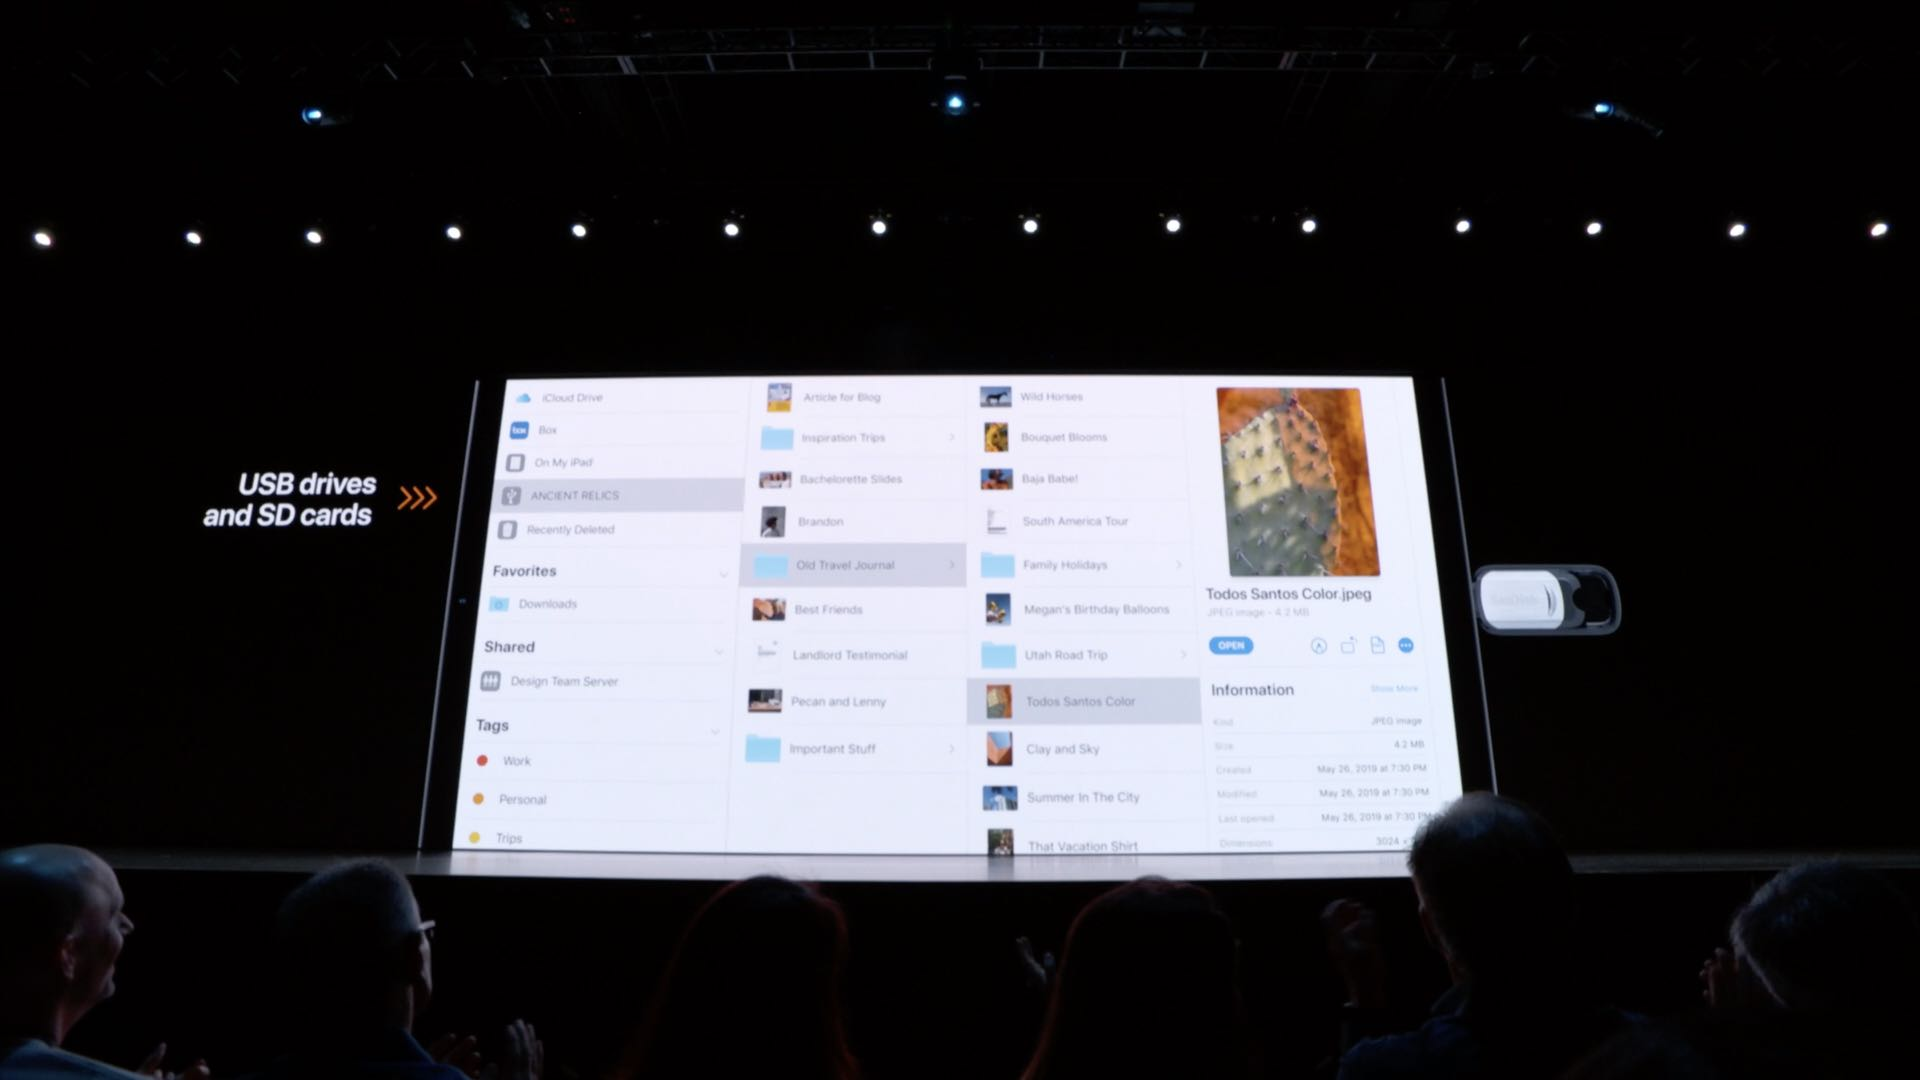 iOS 13 brings a more advanced Files app with Mac-like search